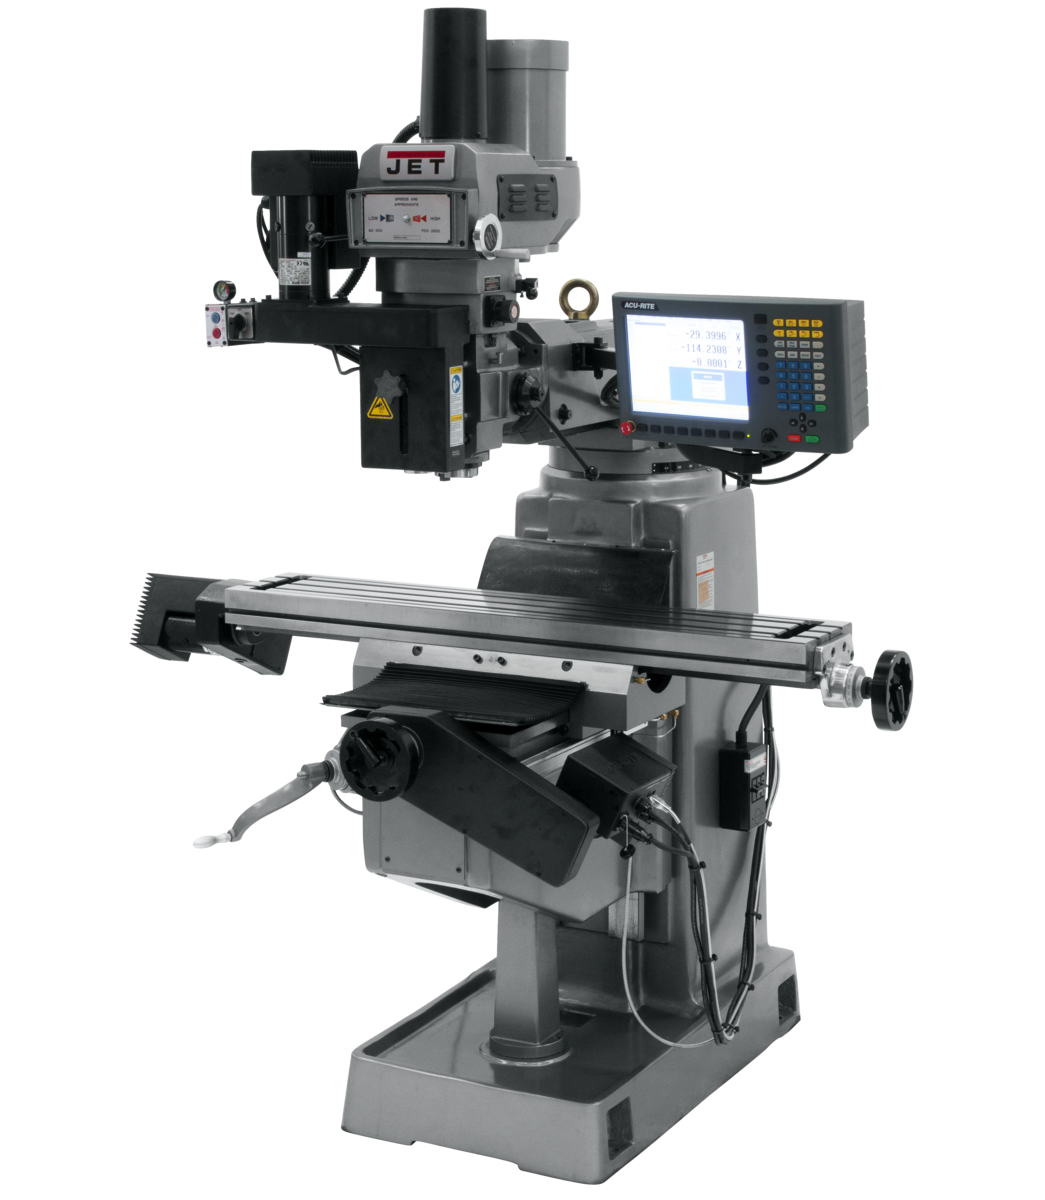 JTM-4VS Mill With 3-Axis ACU-RITE G-2 MILLPWR CNC